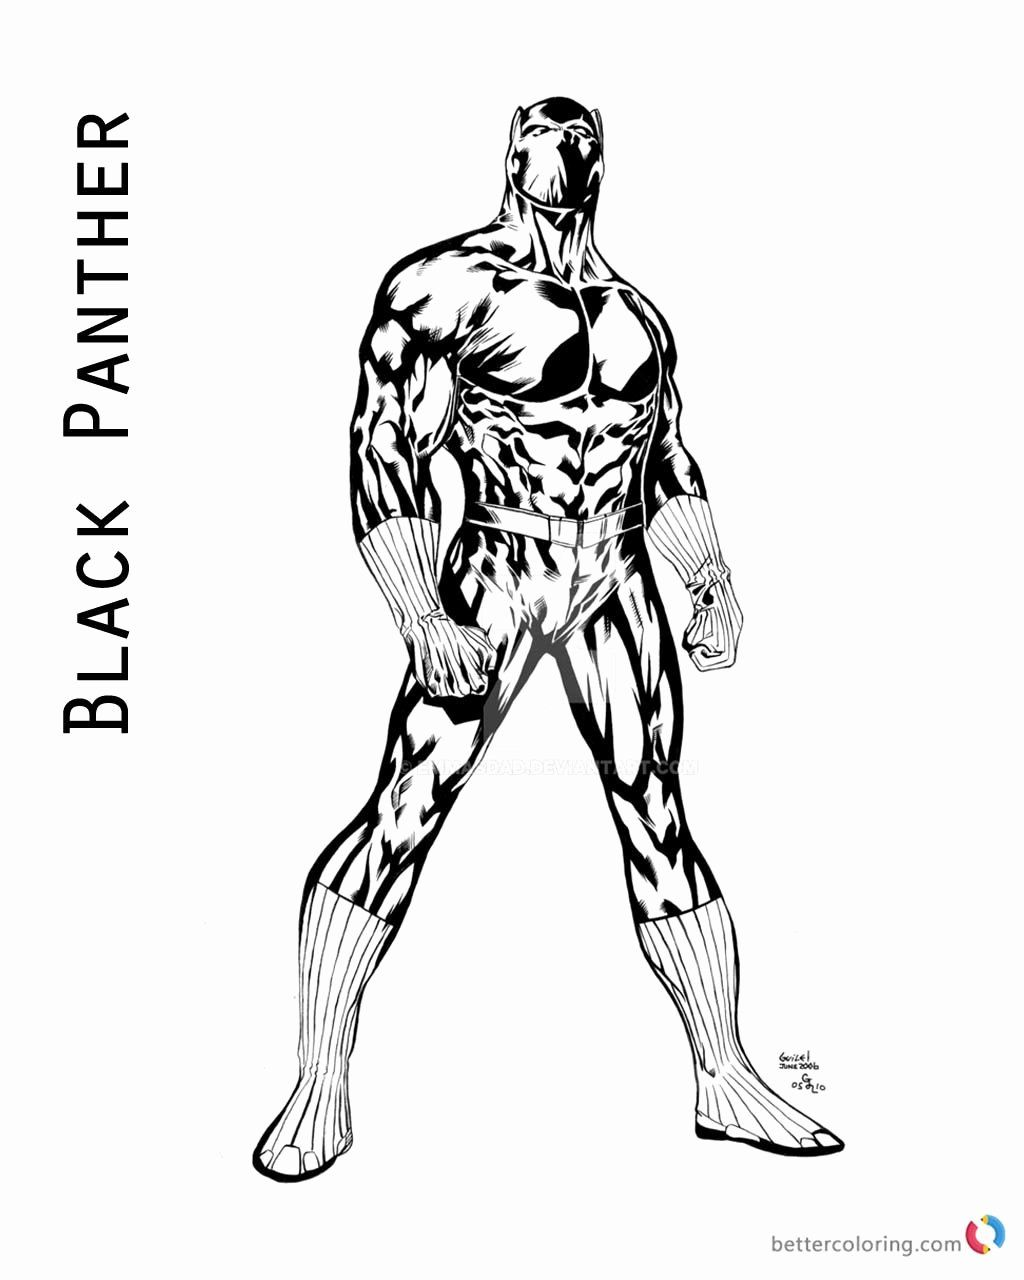 Black Panther Coloring Book Beautiful Black Panther Coloring Pages Marvel Movie Free Printable In 2020 Puppy Coloring Pages Coloring Books Coloring Pages